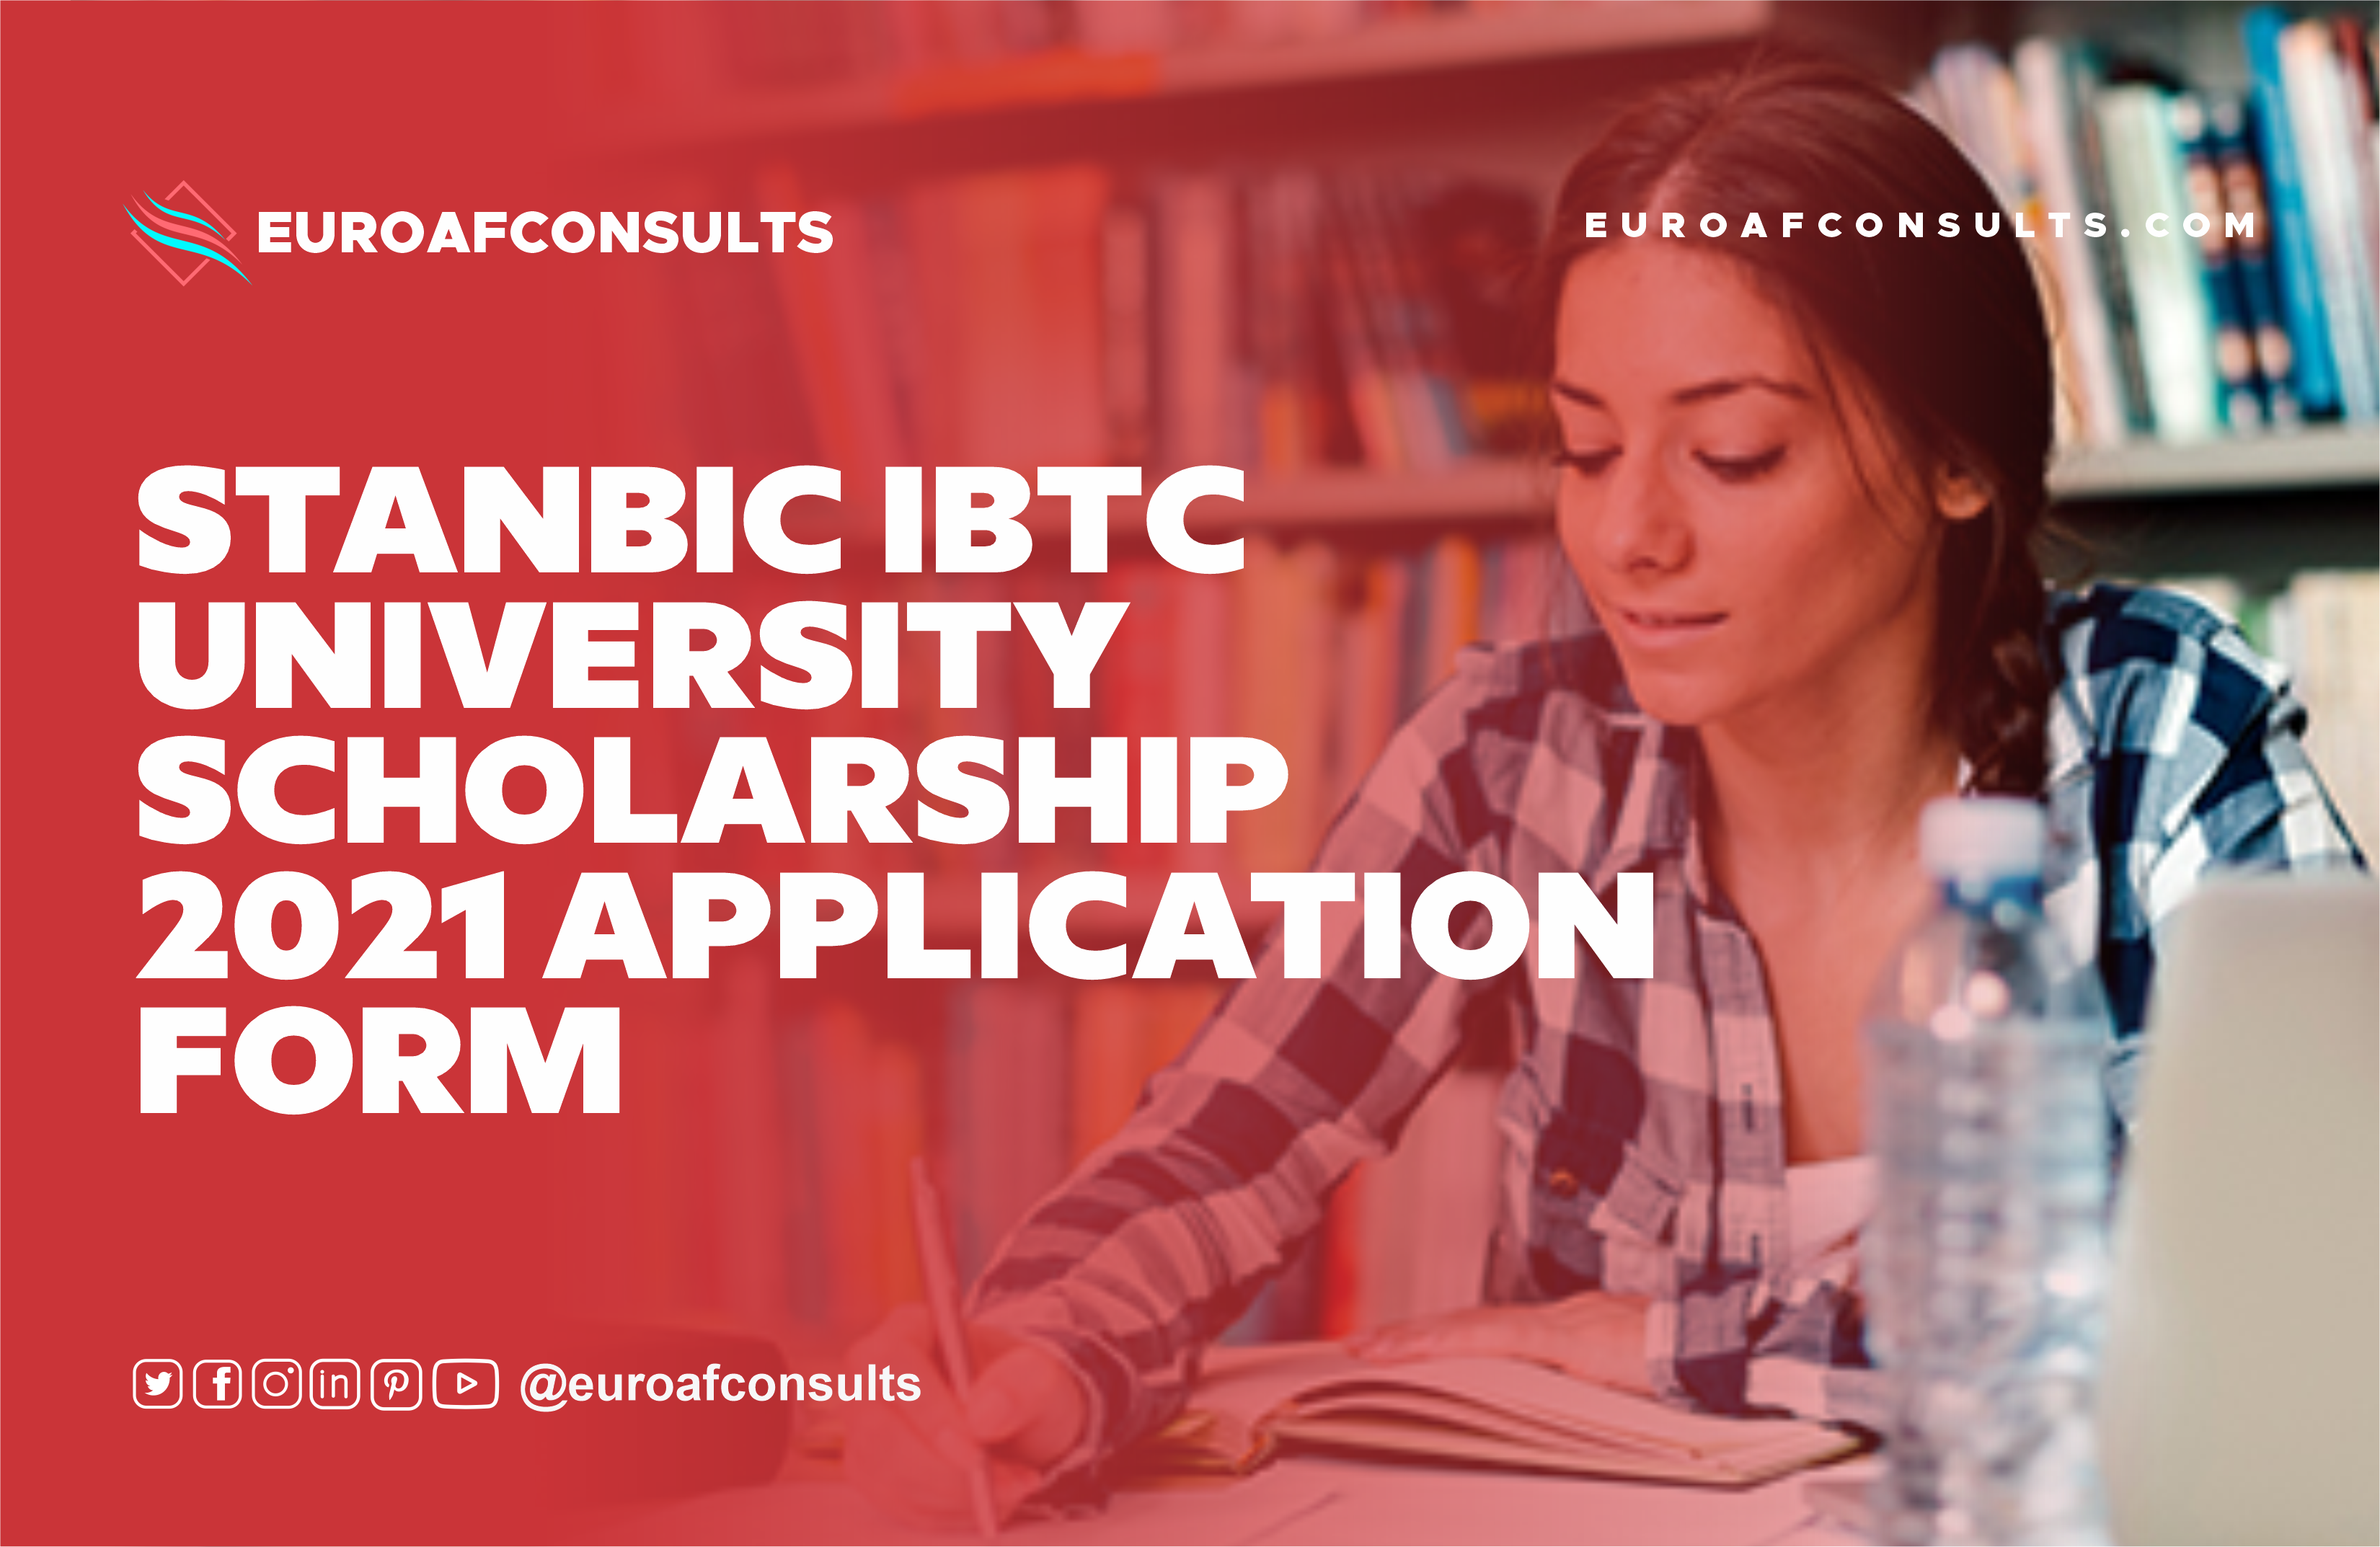 You are currently viewing Stanbic IBTC University Scholarship 2021 Application form